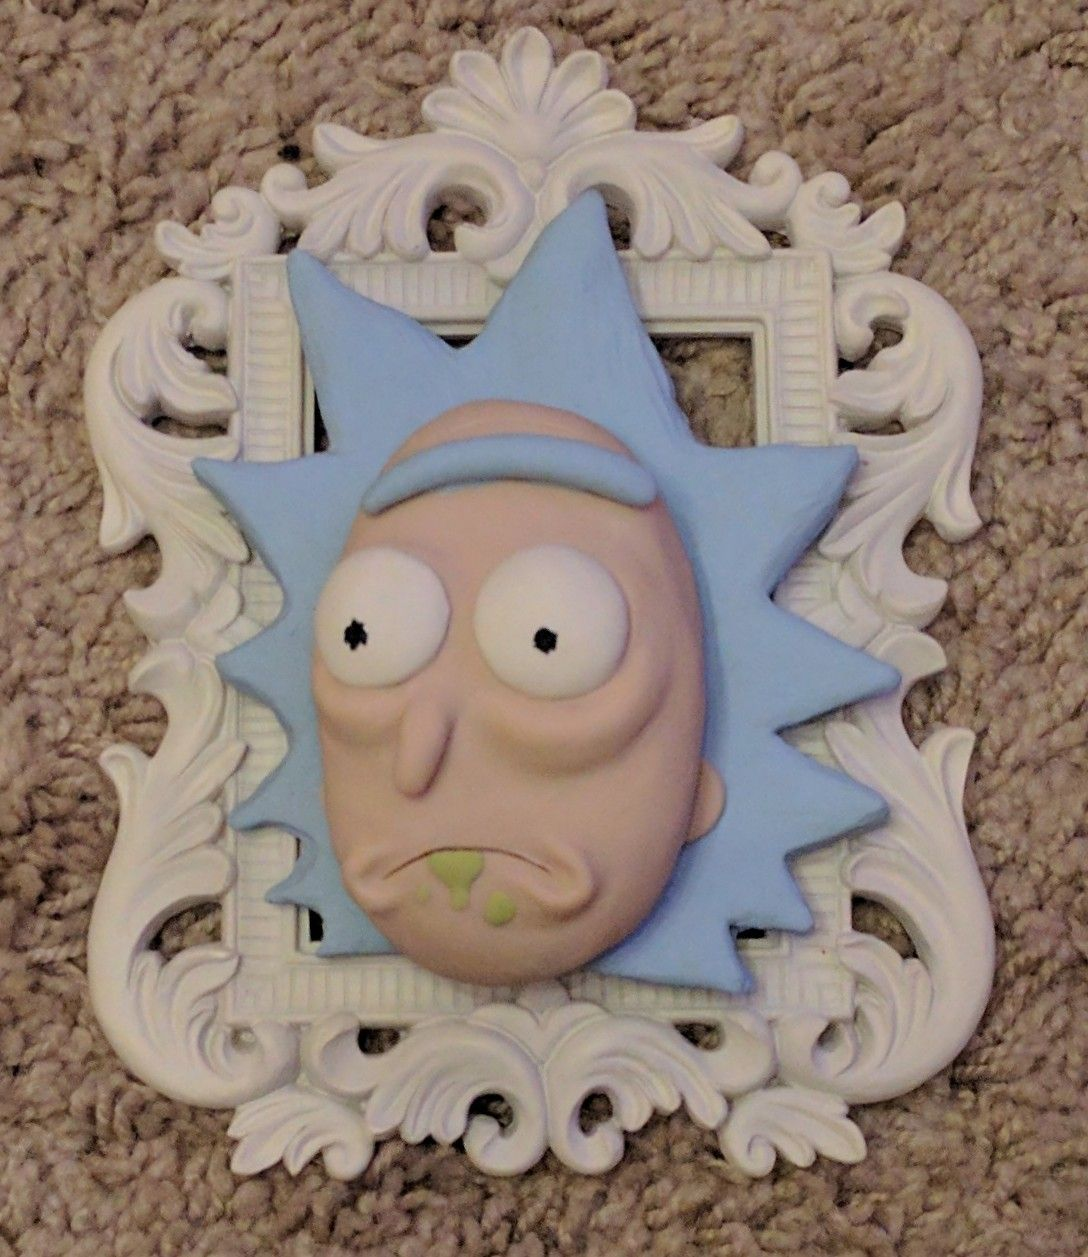 Polymer clay Rick Sanchez from 'Rick & Morty' by Kelsey Waite in ornate matte white frame.